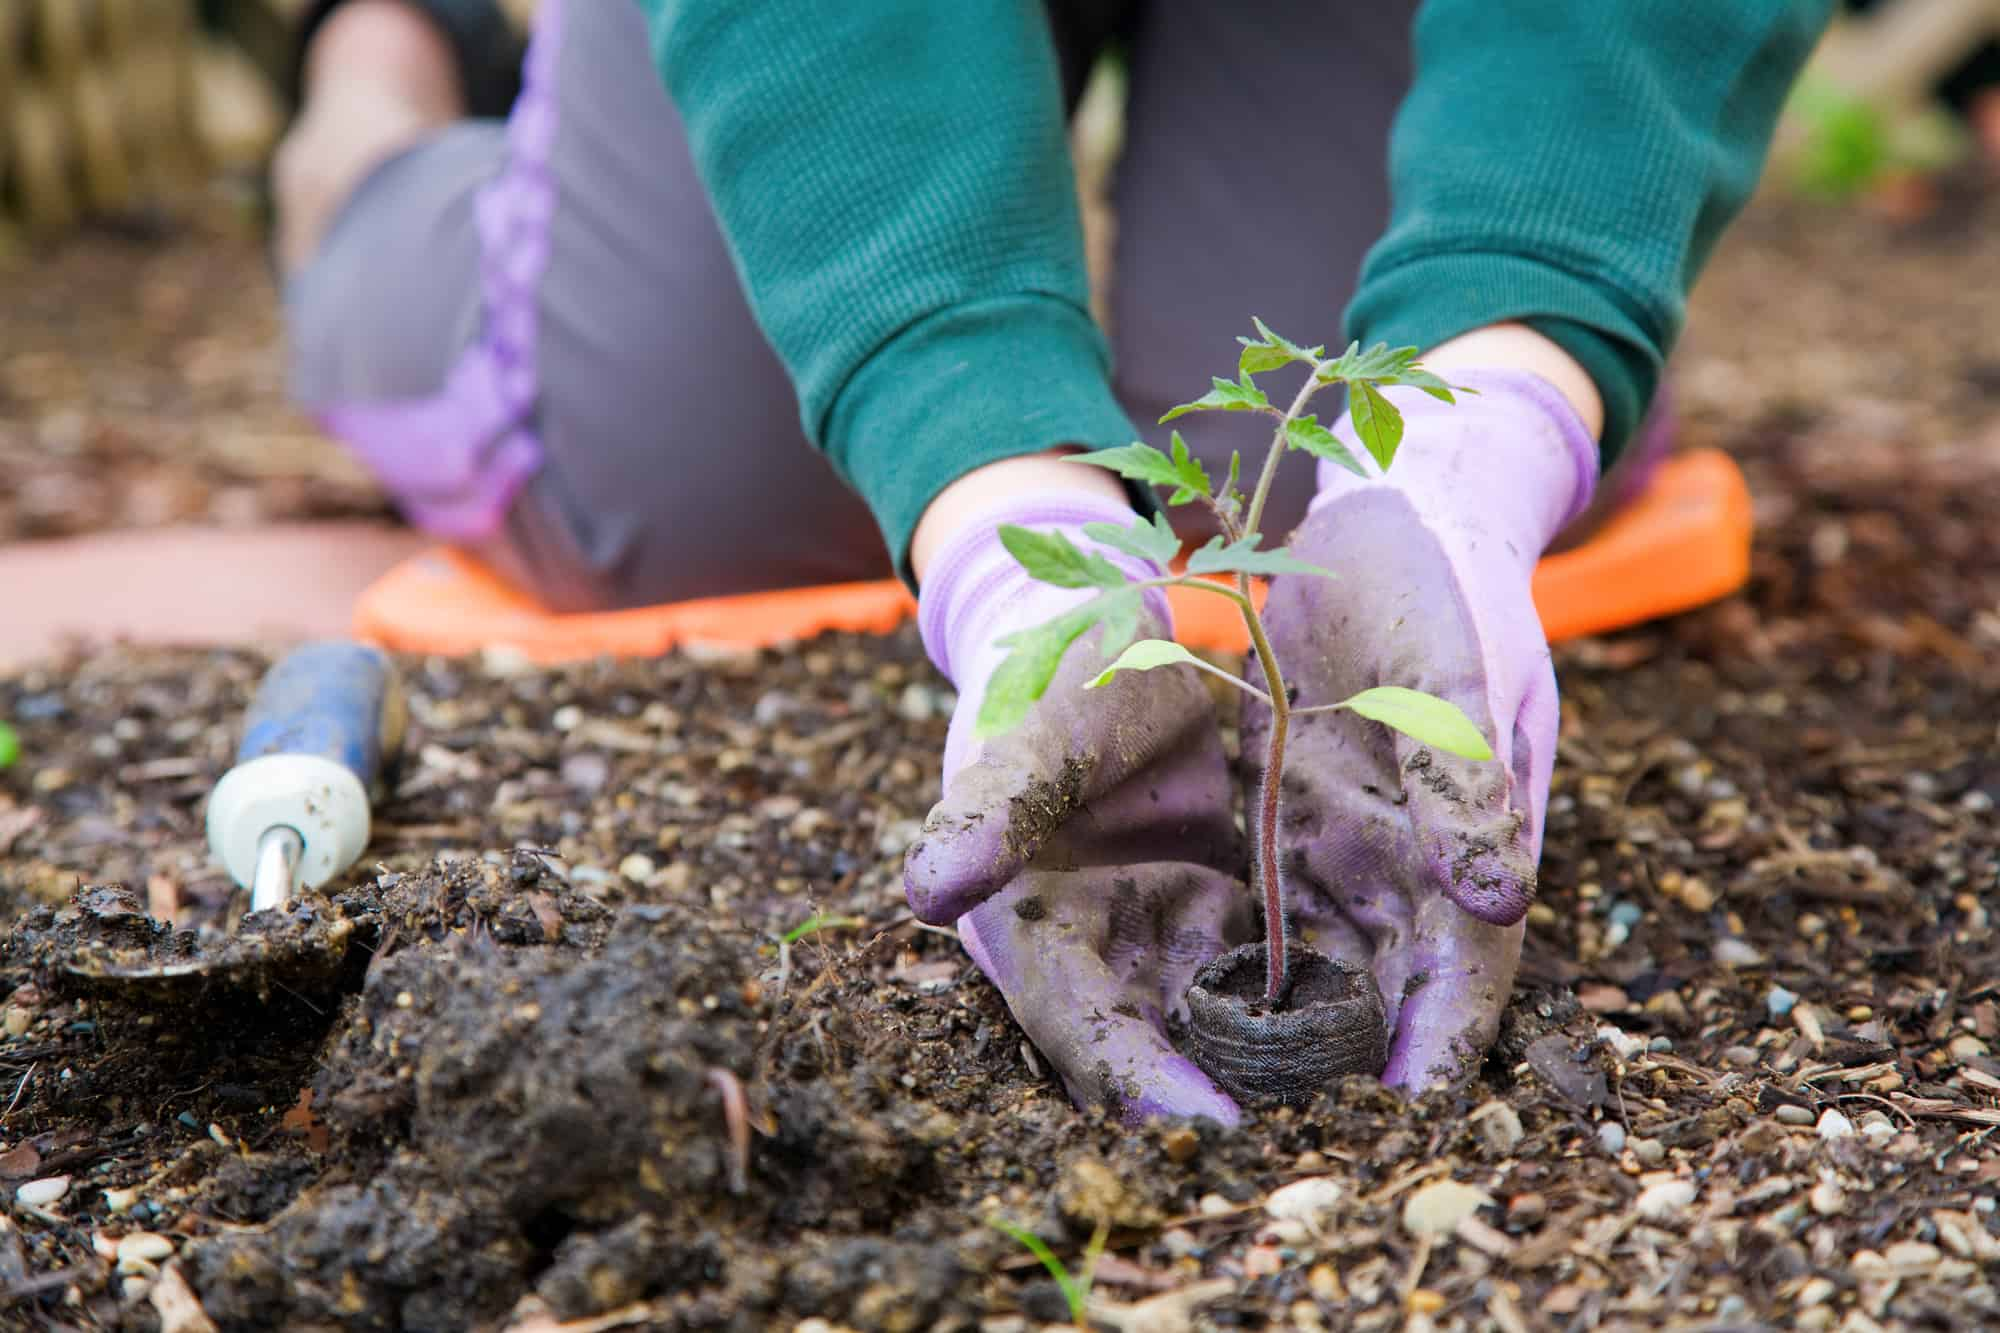 Closeup image of woman & hands in gardening gloves planting tomato